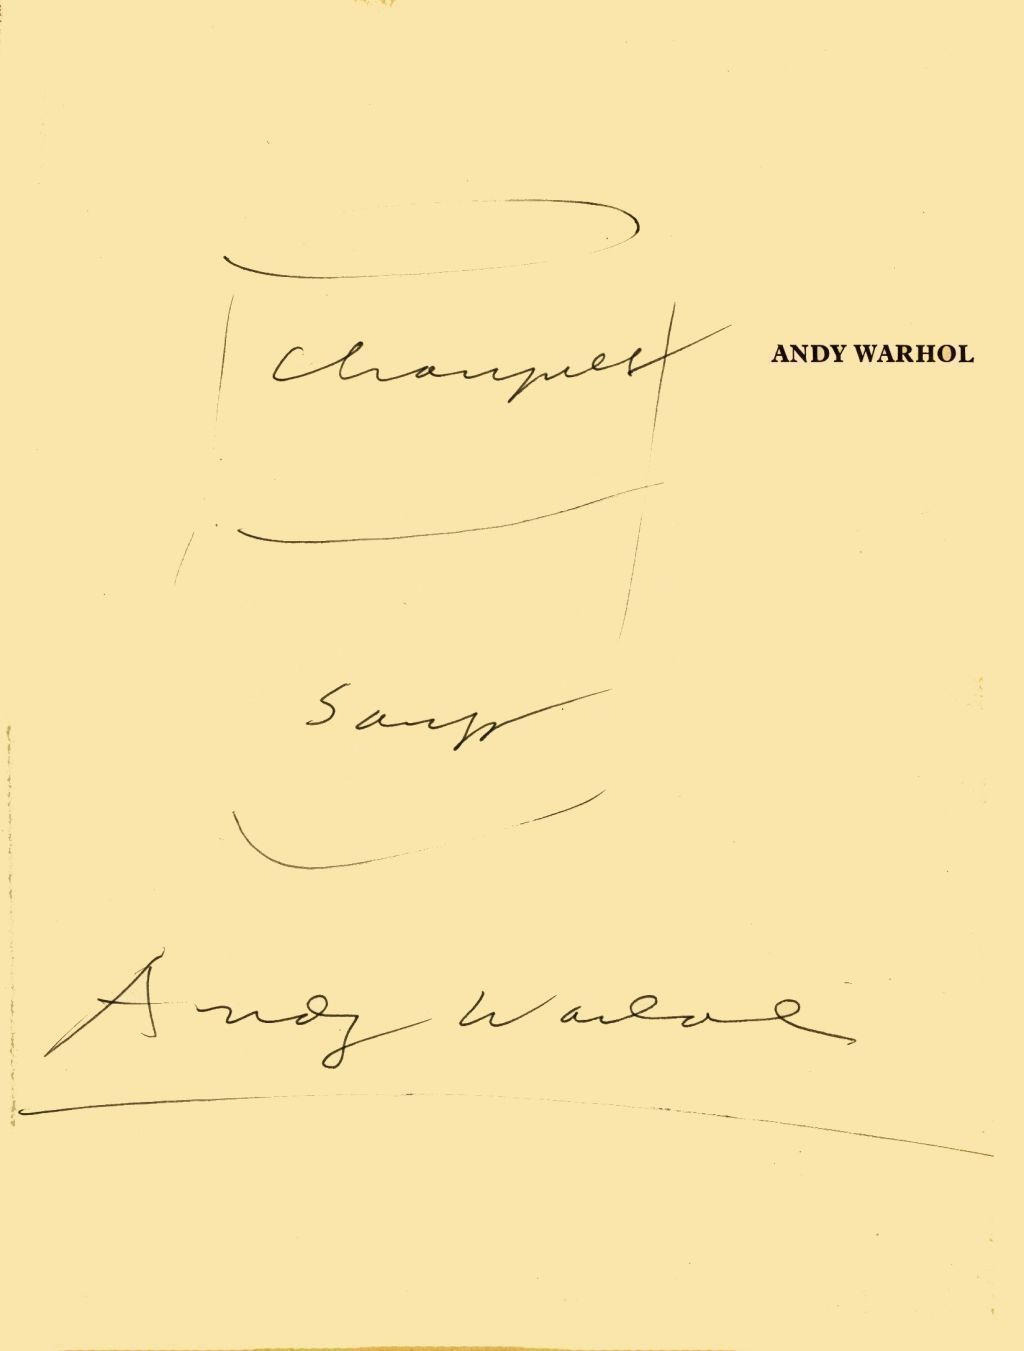 art from marcel duchamp all the way to andy warhol  autograph and sketch by andy warhol